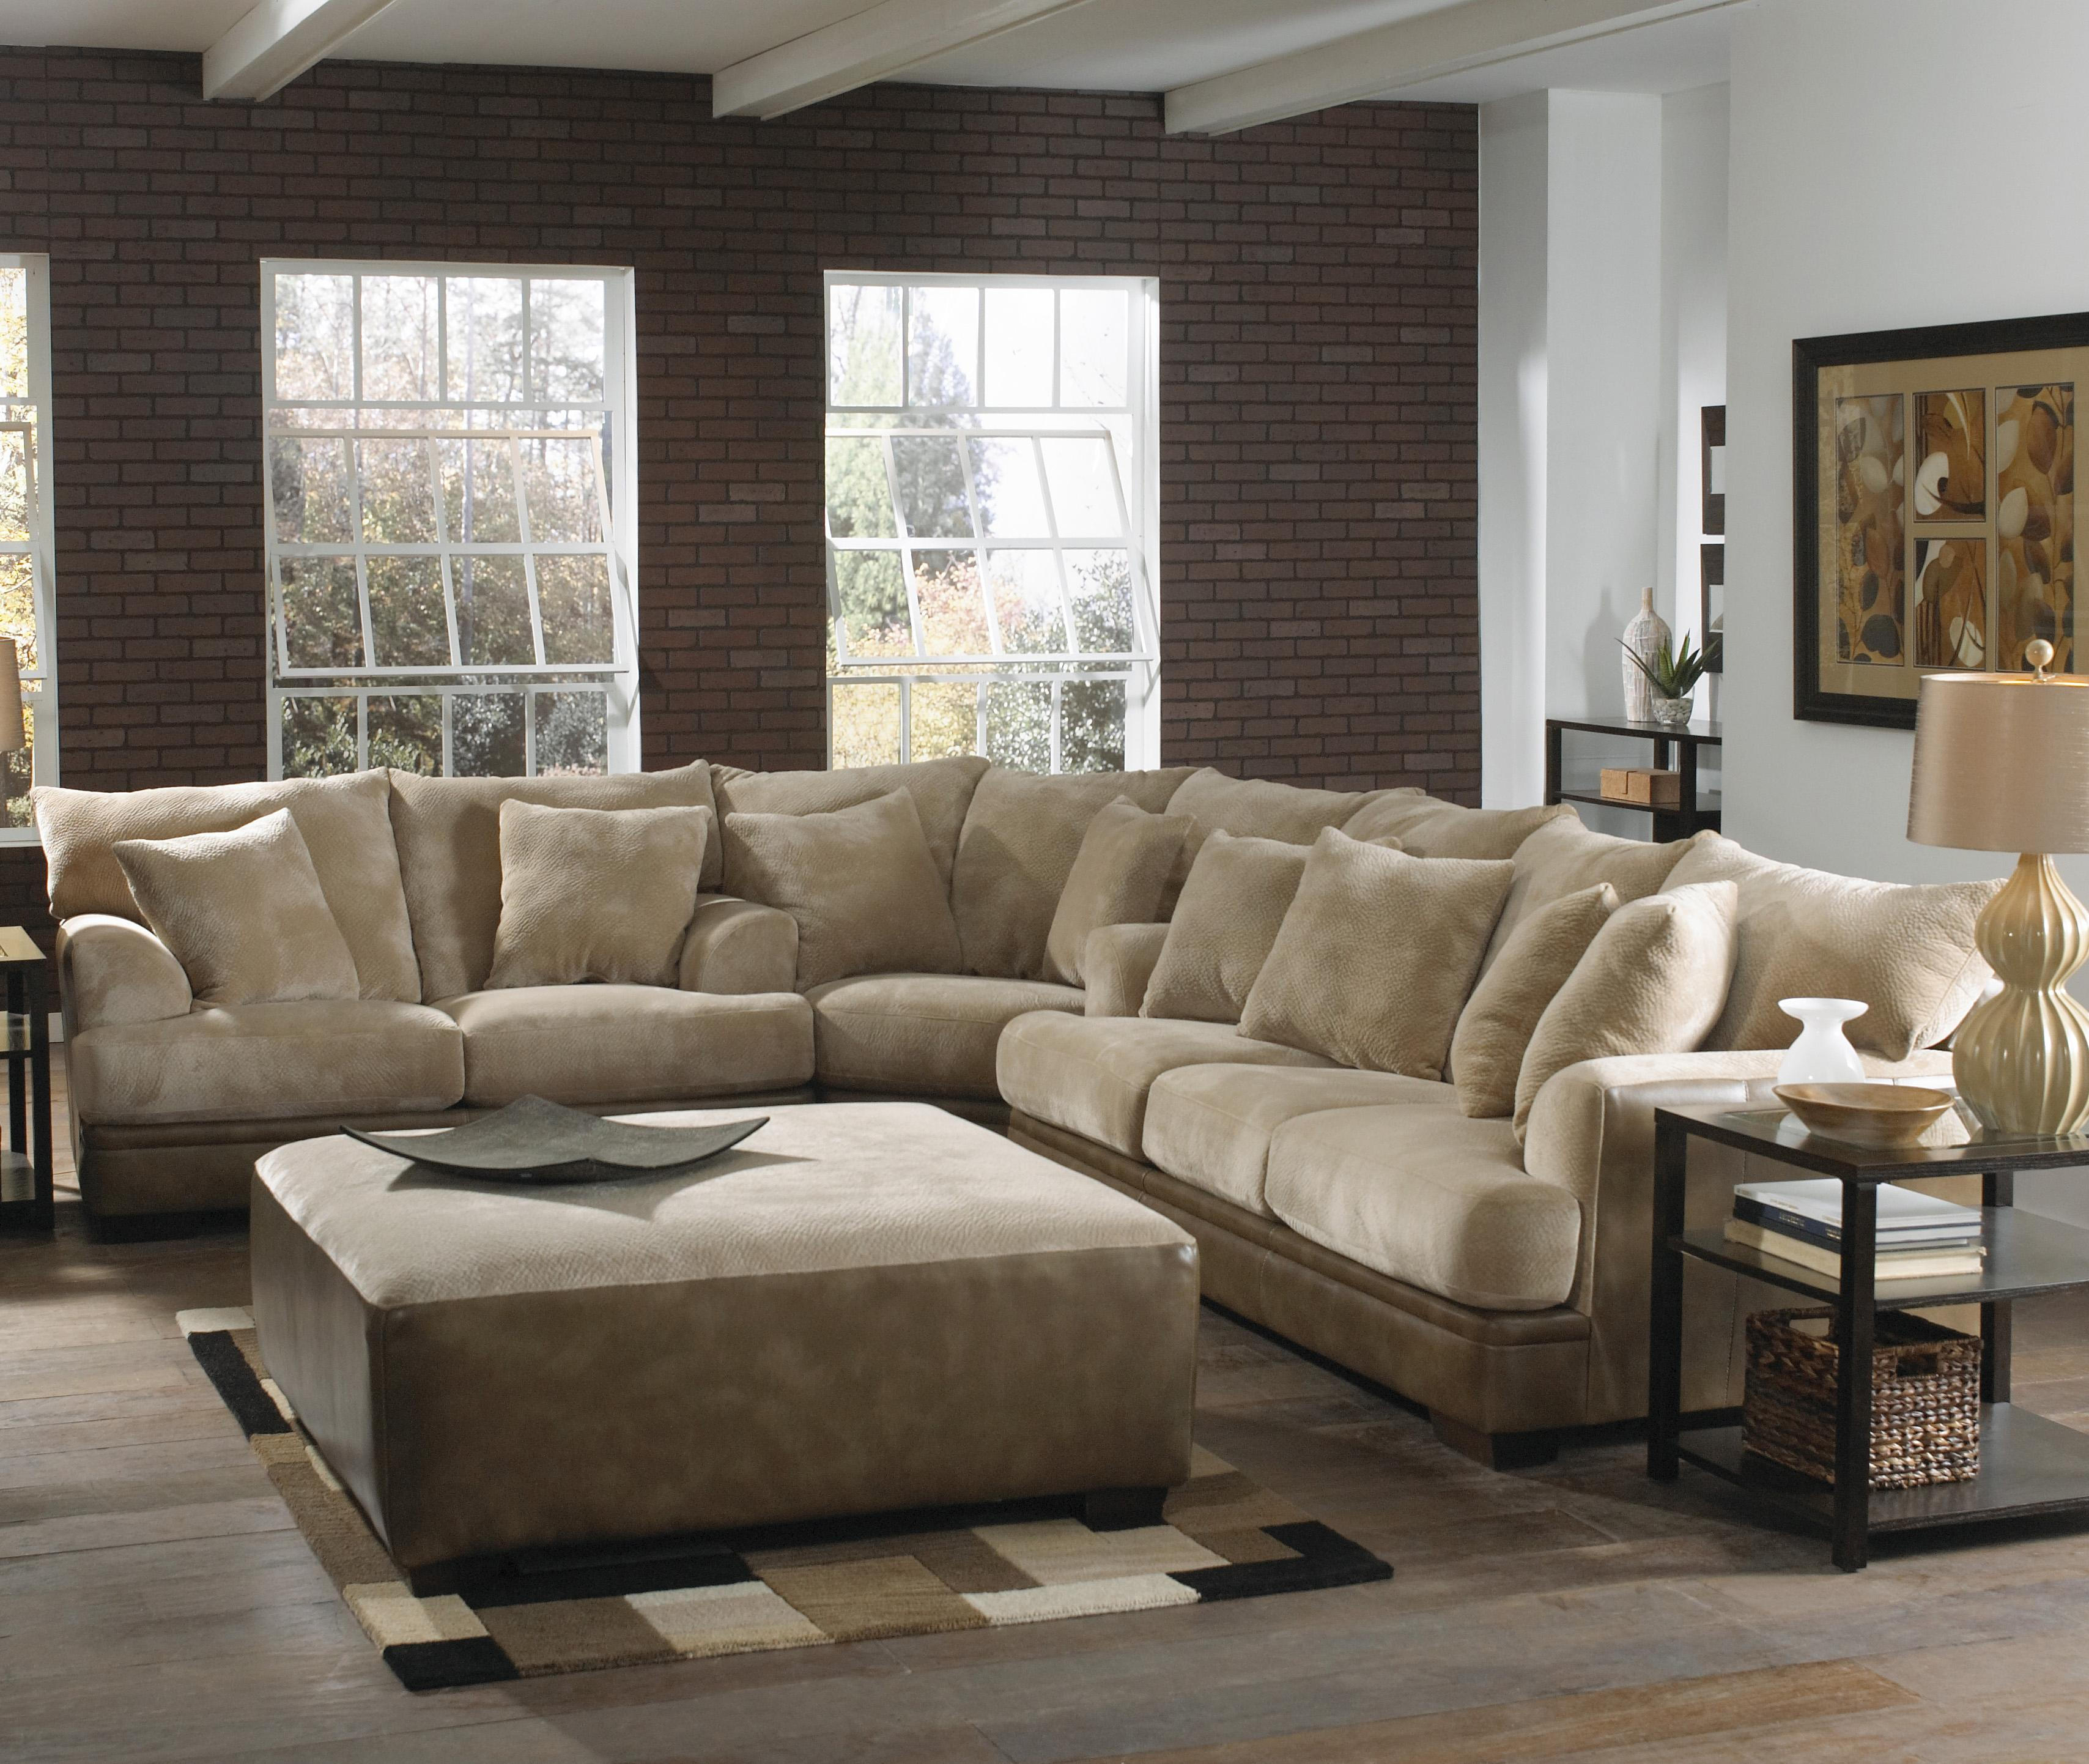 Barkley Large L Shaped Sectional Sofa With Left Side Loveseat By Jackson Furniture Wolf Furniture